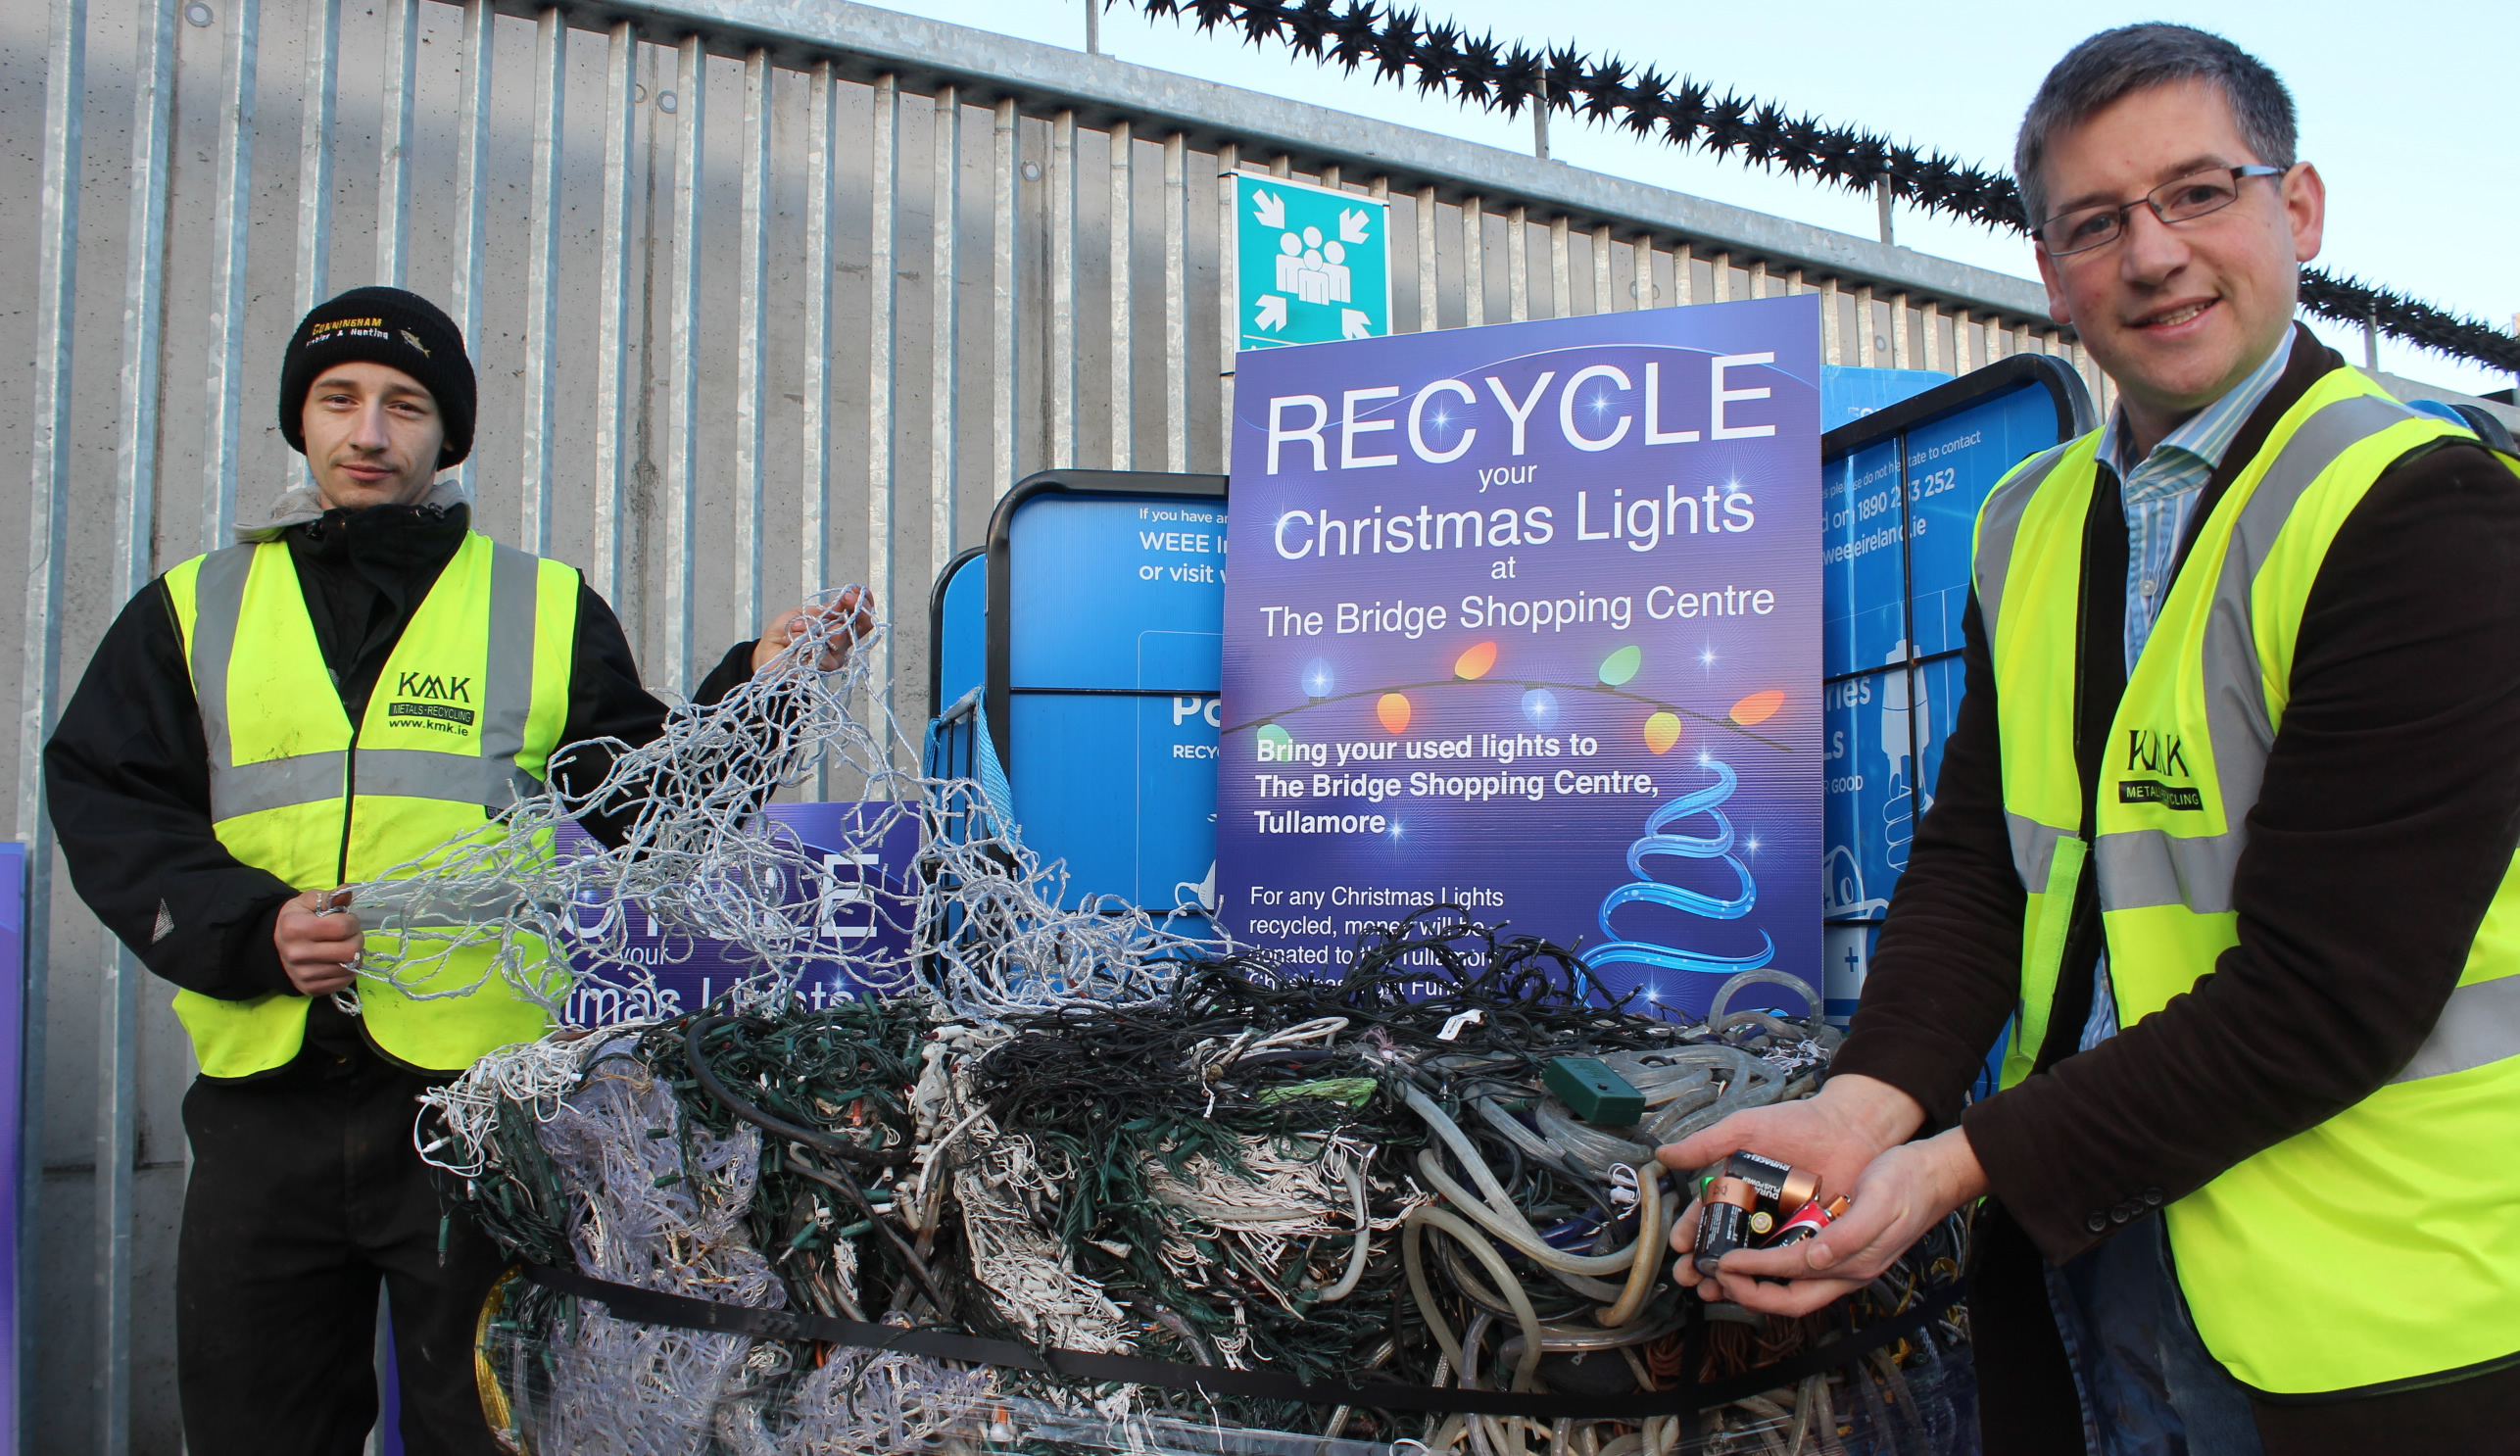 lights-recycling